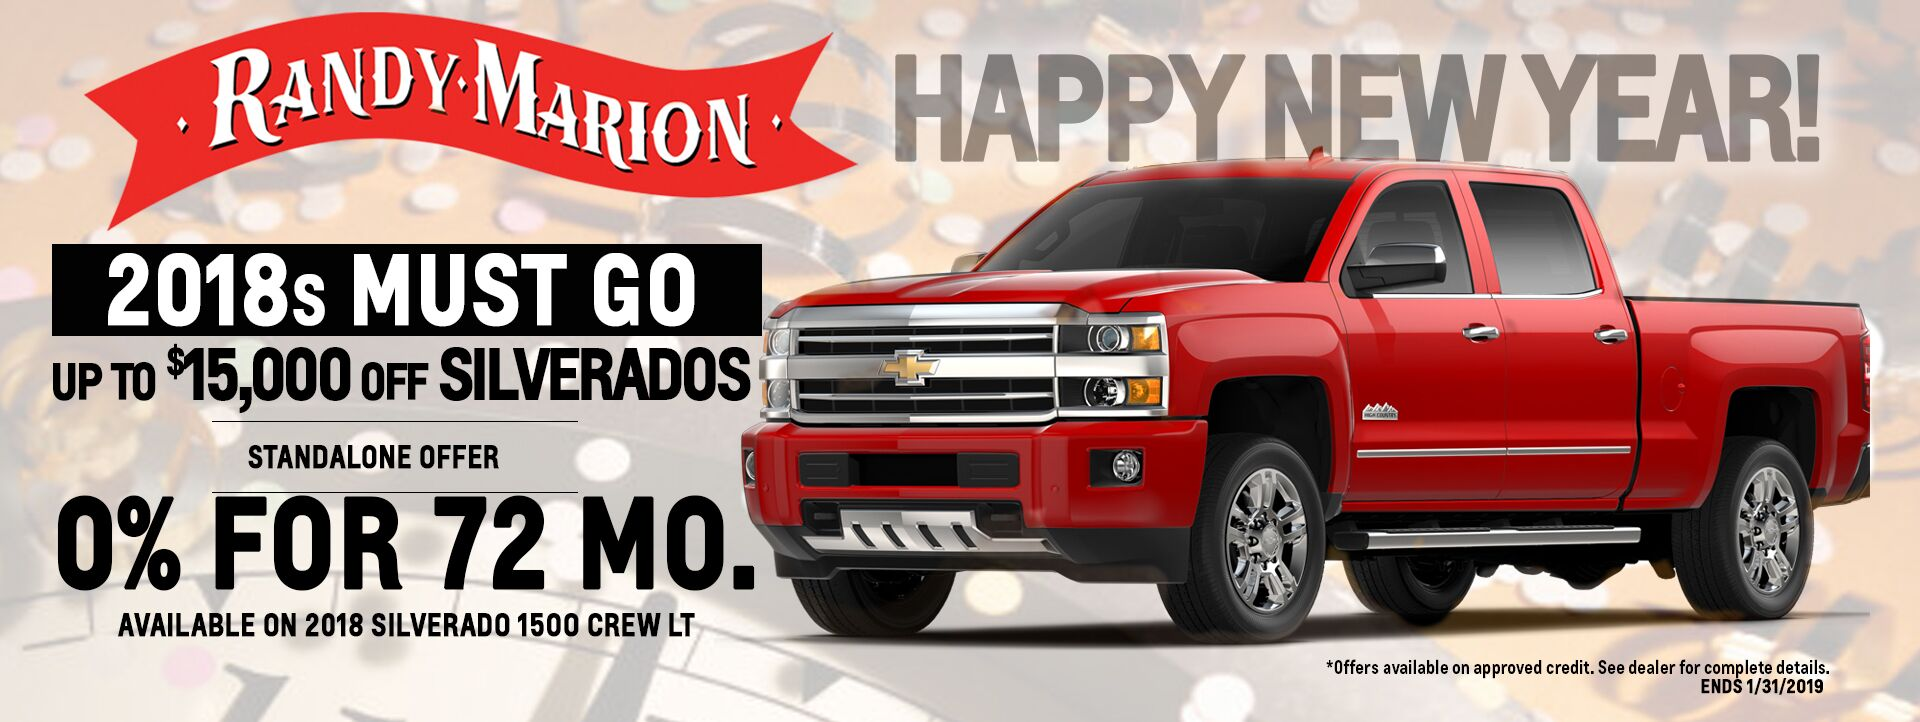 Happy New Year Chevrolet